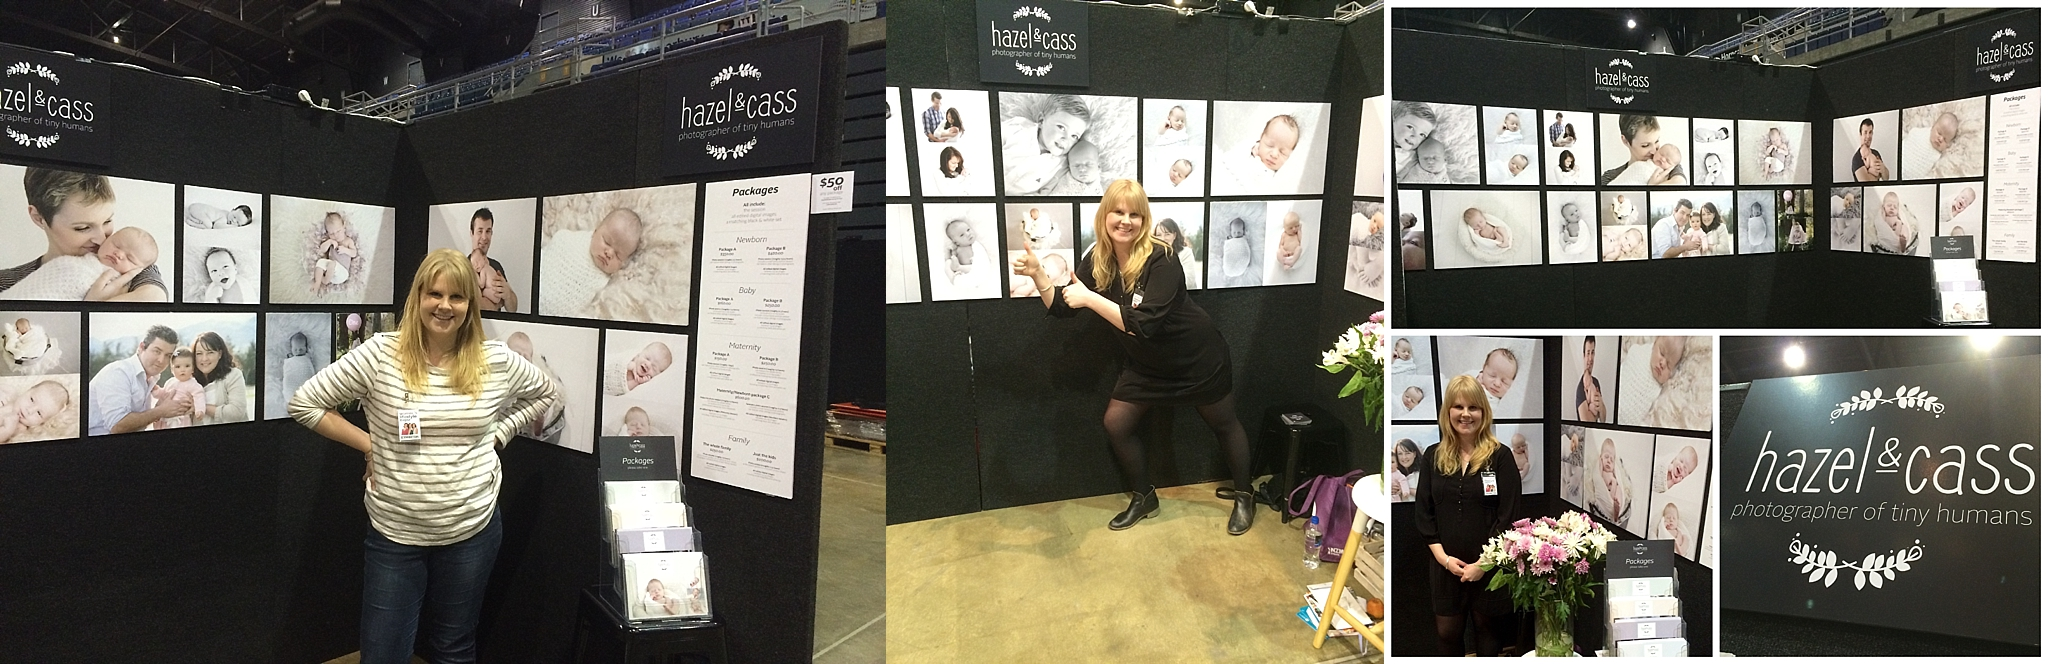 Me at the Woman's Expo in 2015.